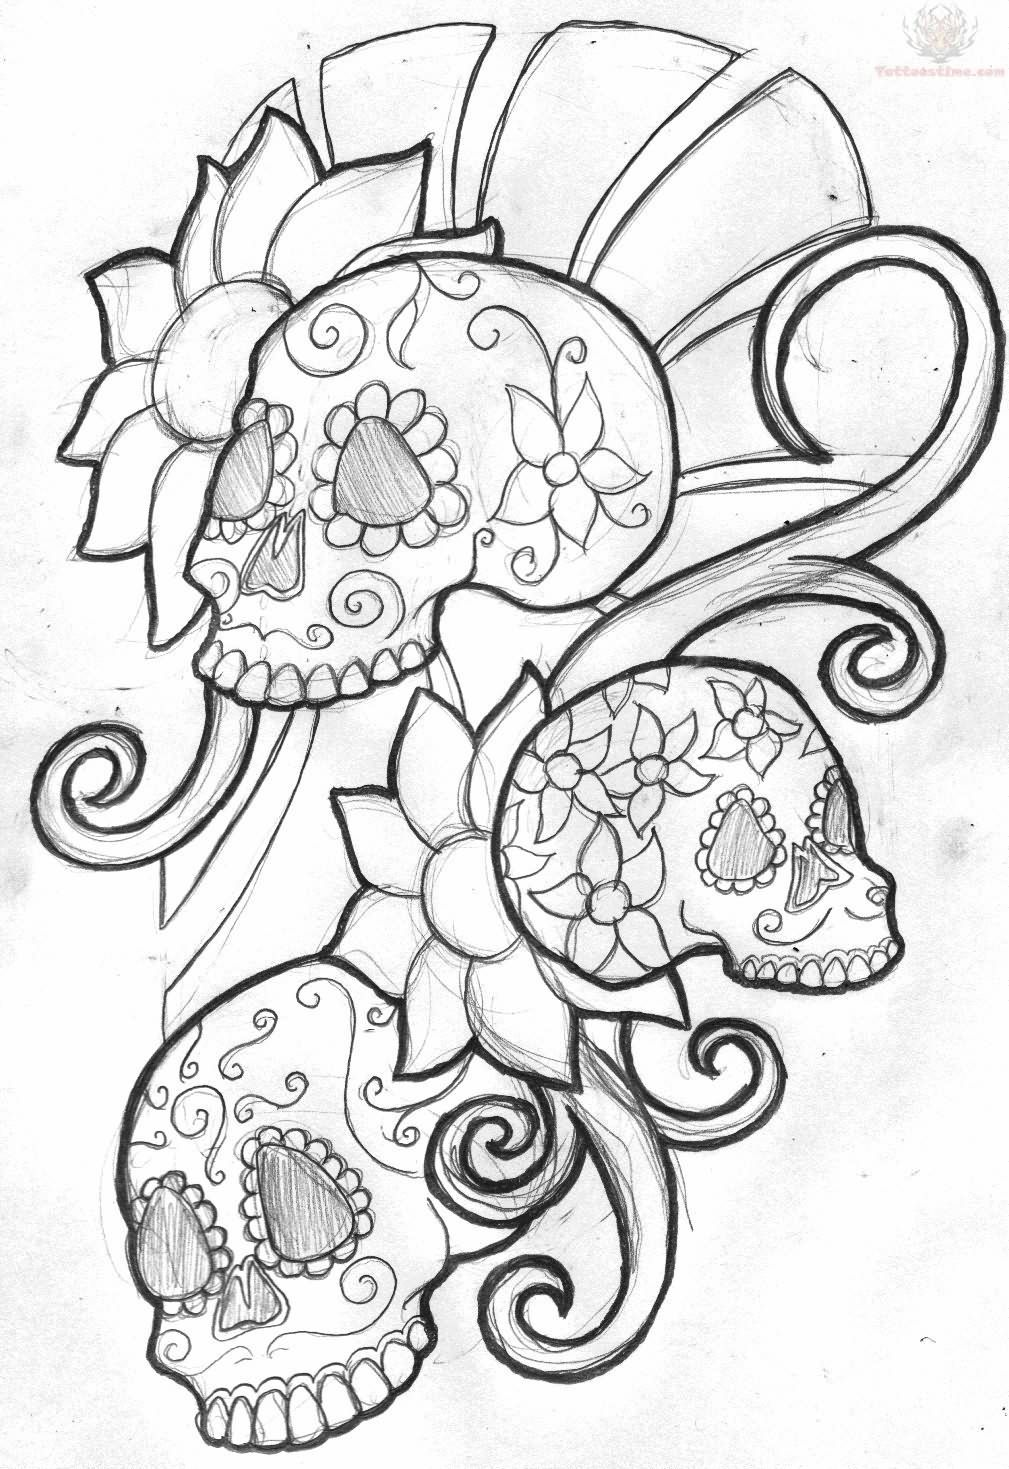 Simple skull tattoo designs - Mexican Sugar Skull Tattoo Design Soo Want This On My Upper Arm